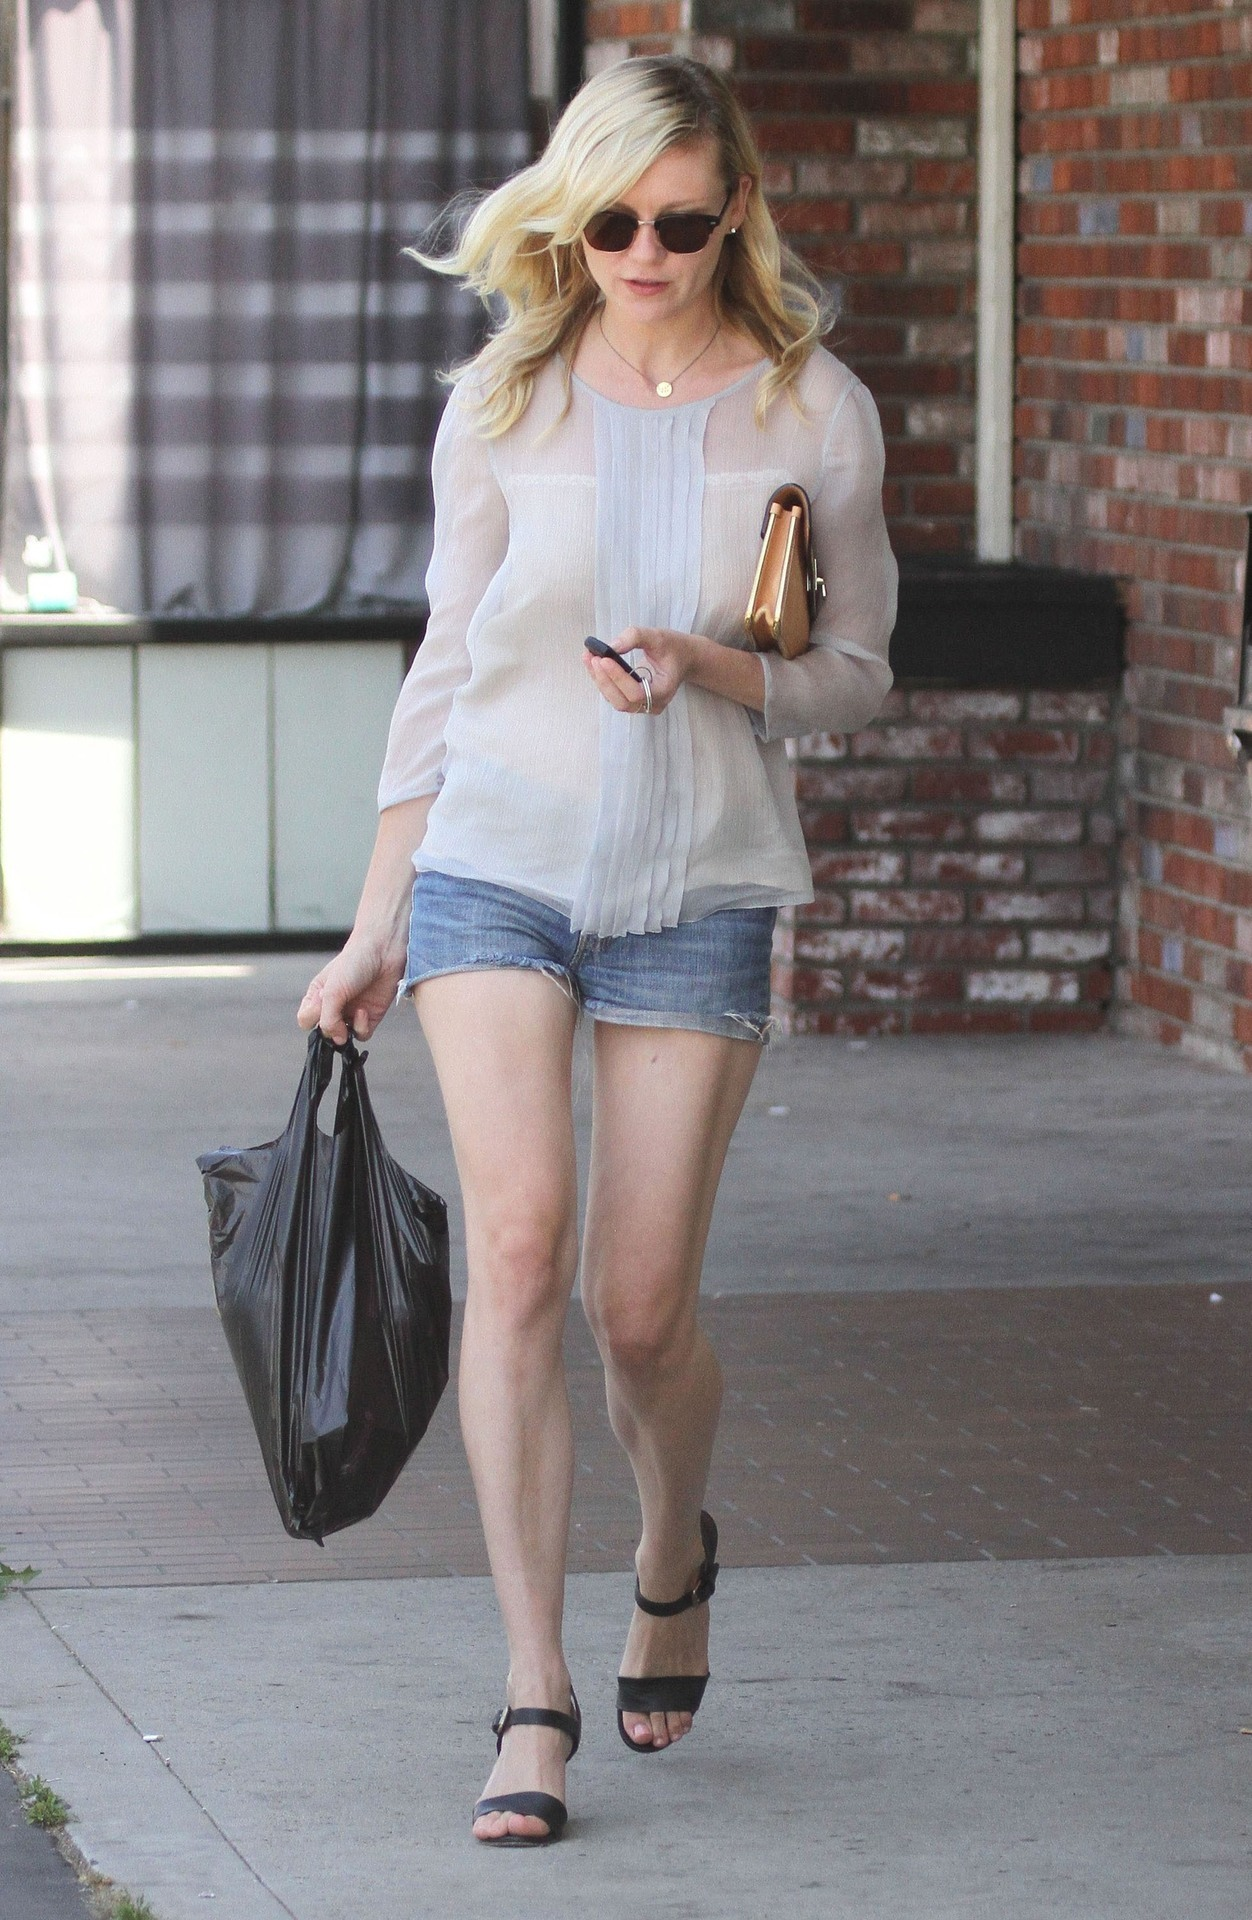 Kirsten Dunst in Toluca Lake, July 17th